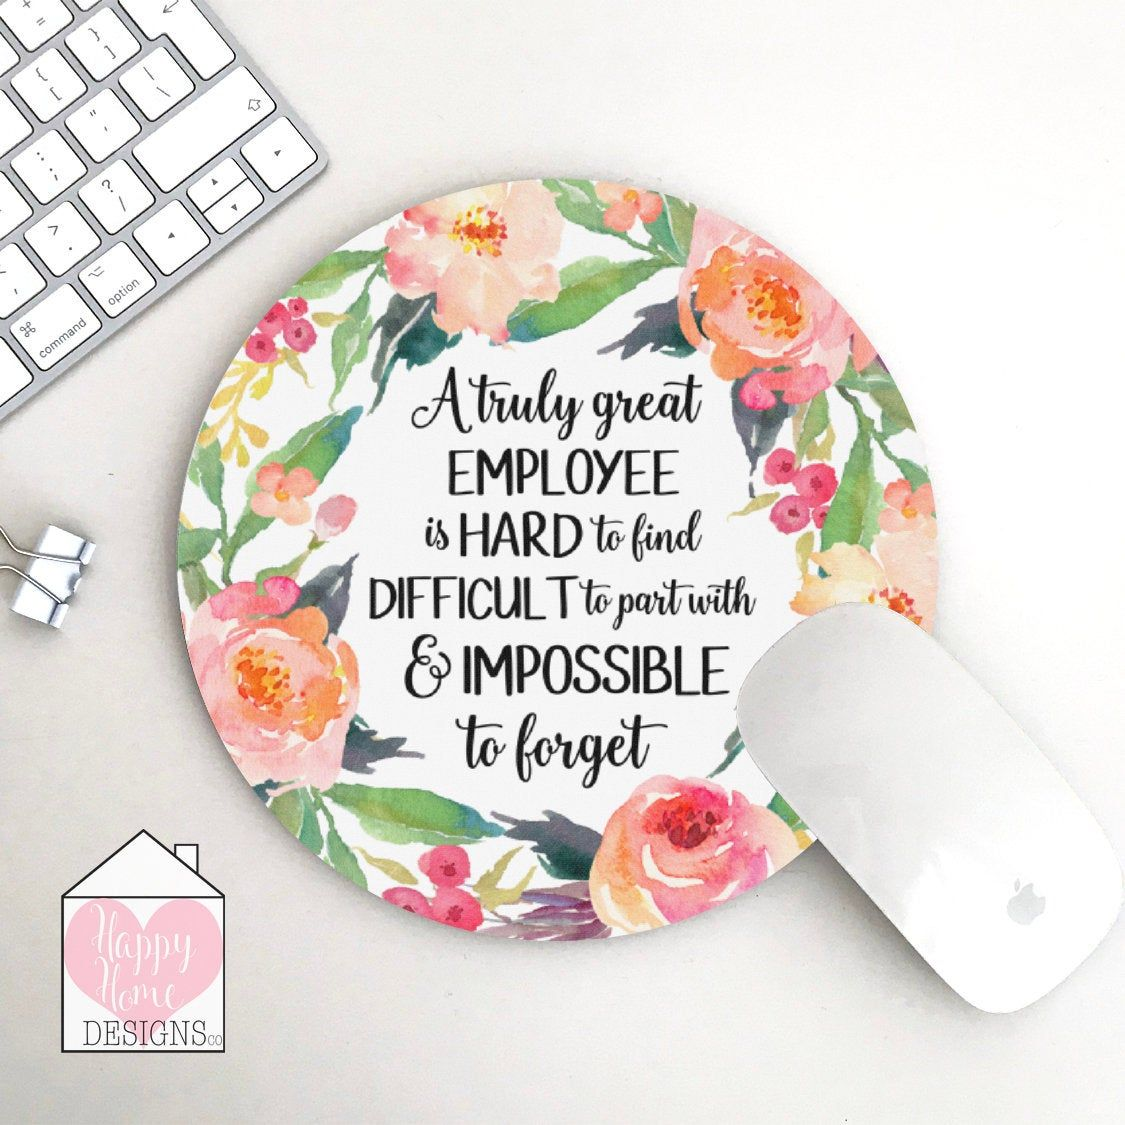 Gift For Employee, Employee Mouse Pad, Office Decor, A Truly Great Employee, Employee Leaving Gift, Mouse Mat For Employee, Floral Mouse Pad